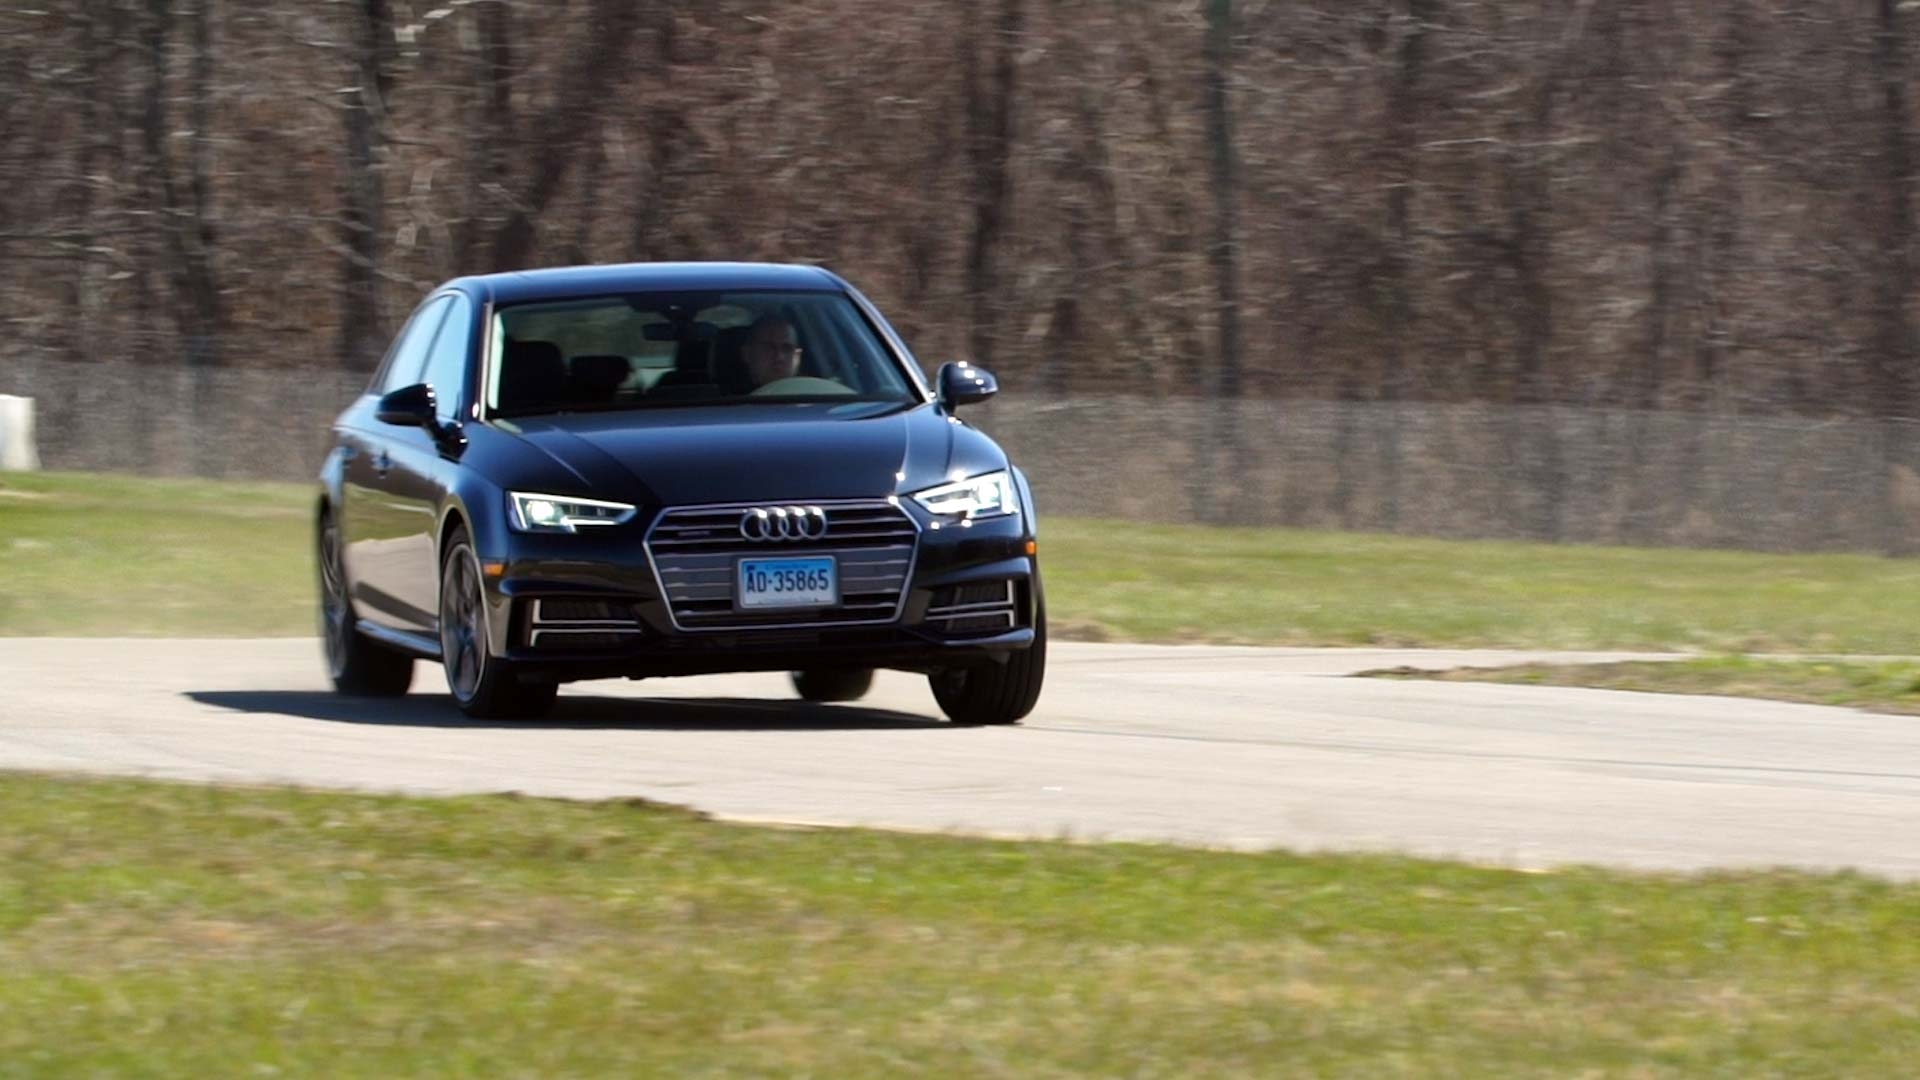 2017 audi a4 review - consumer reports